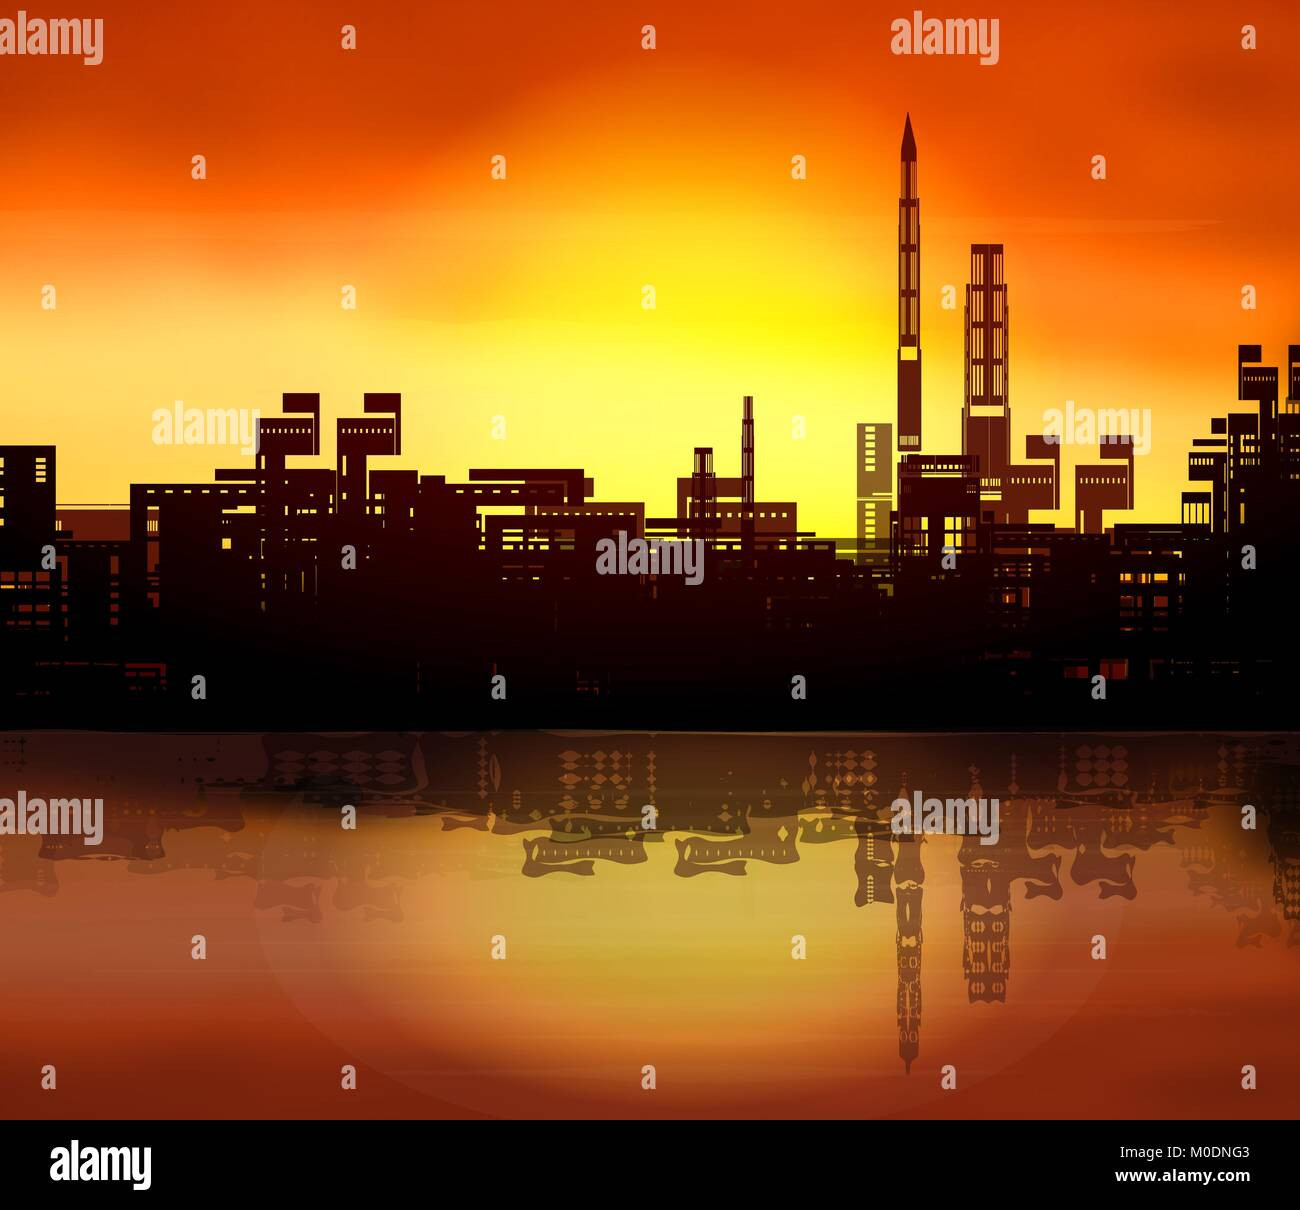 Sunset over a big city - Stock Vector